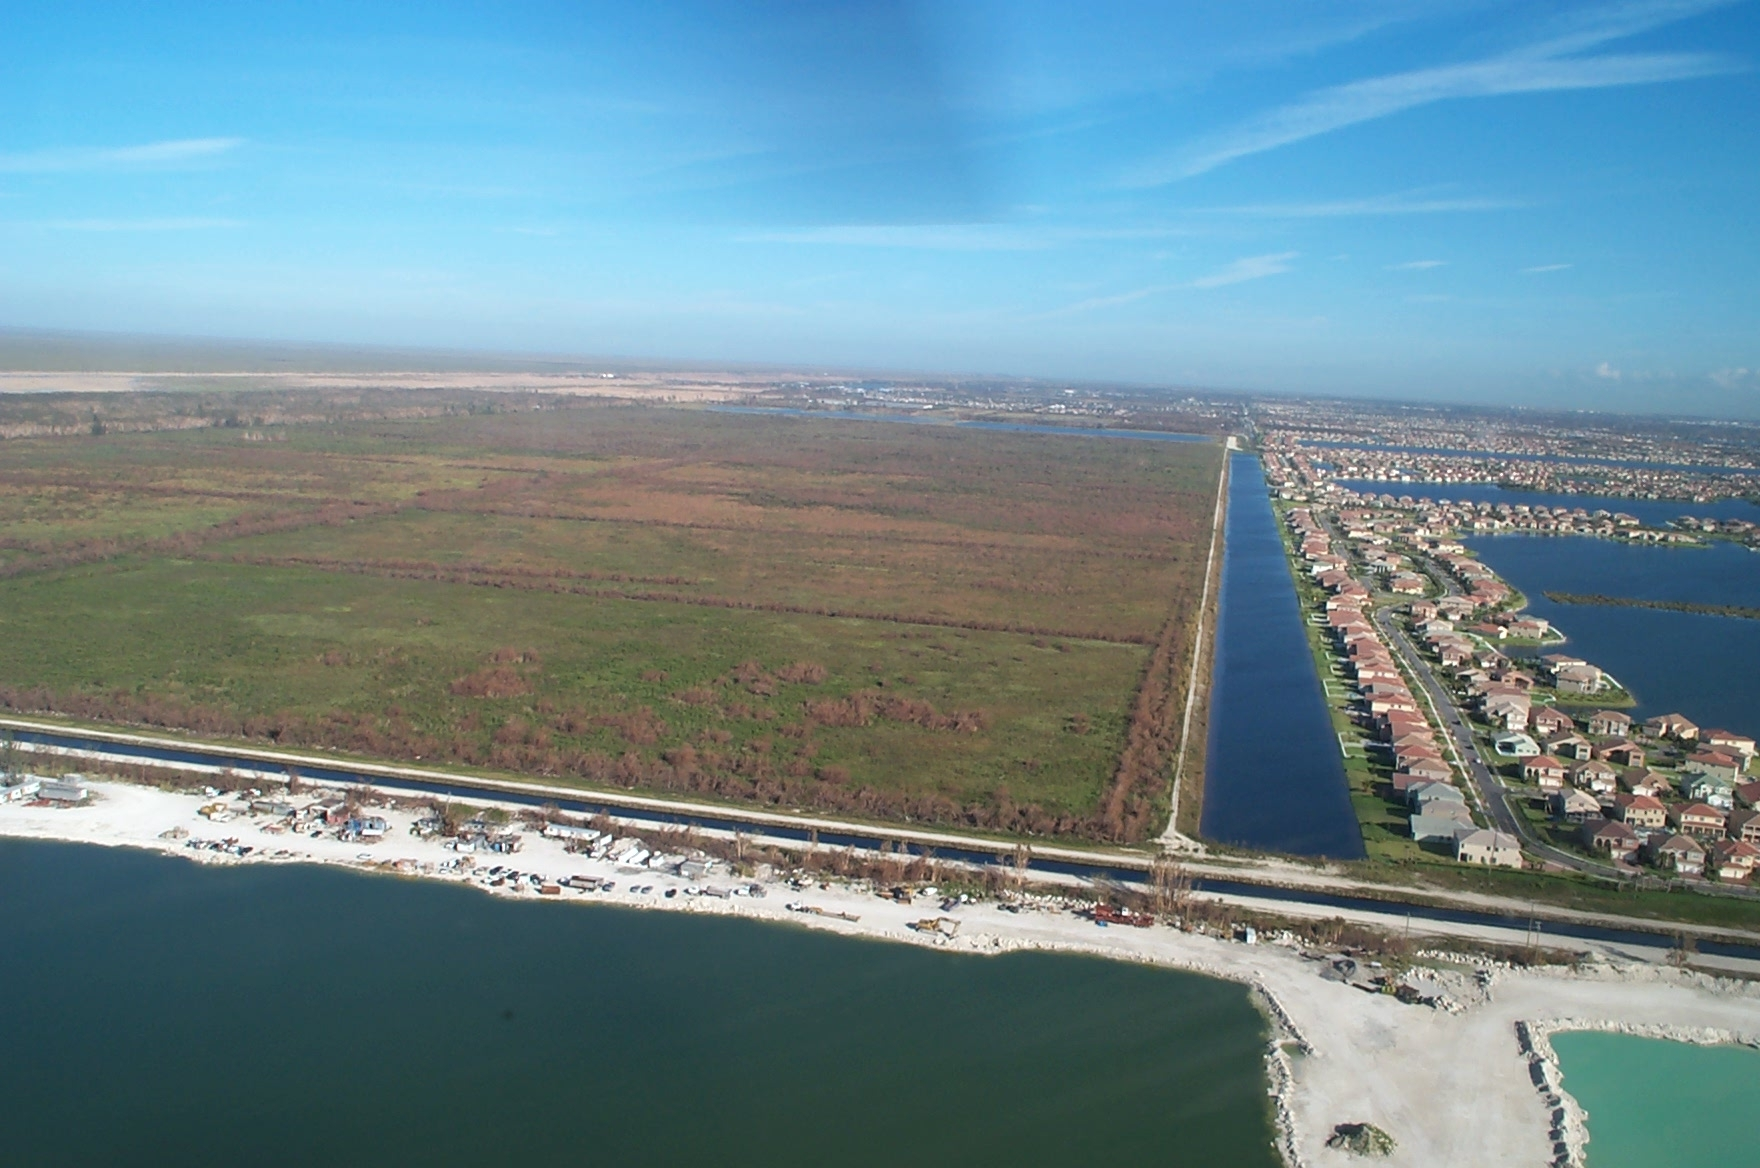 Aerial view of the Broward County Water Preserve Area project area showing one of the water conservation areas and the adjoining canal.